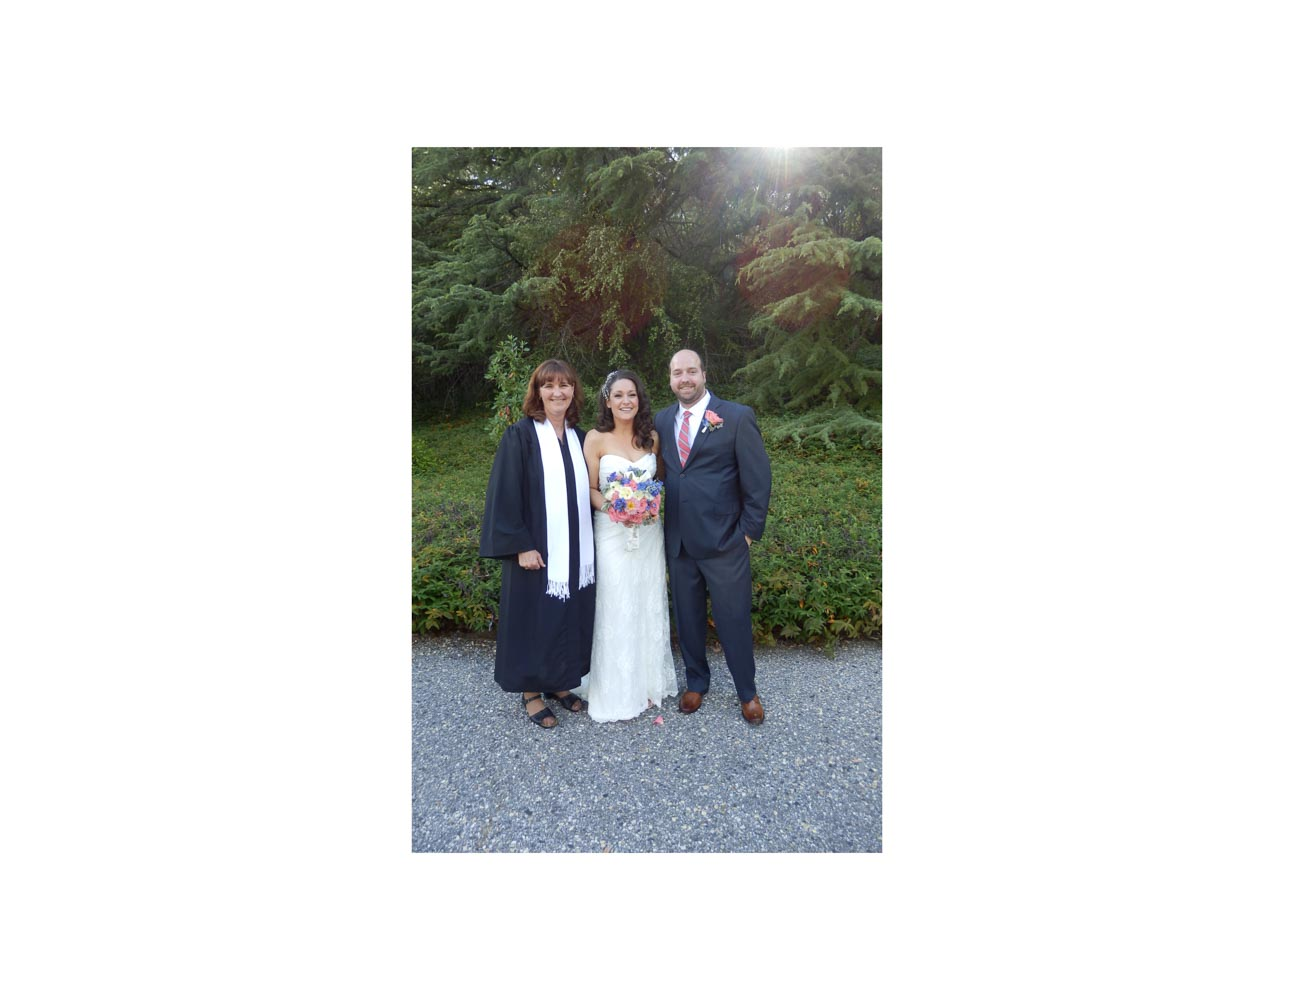 Minister, bride and groom standing on driveway of outdoor wedding venue